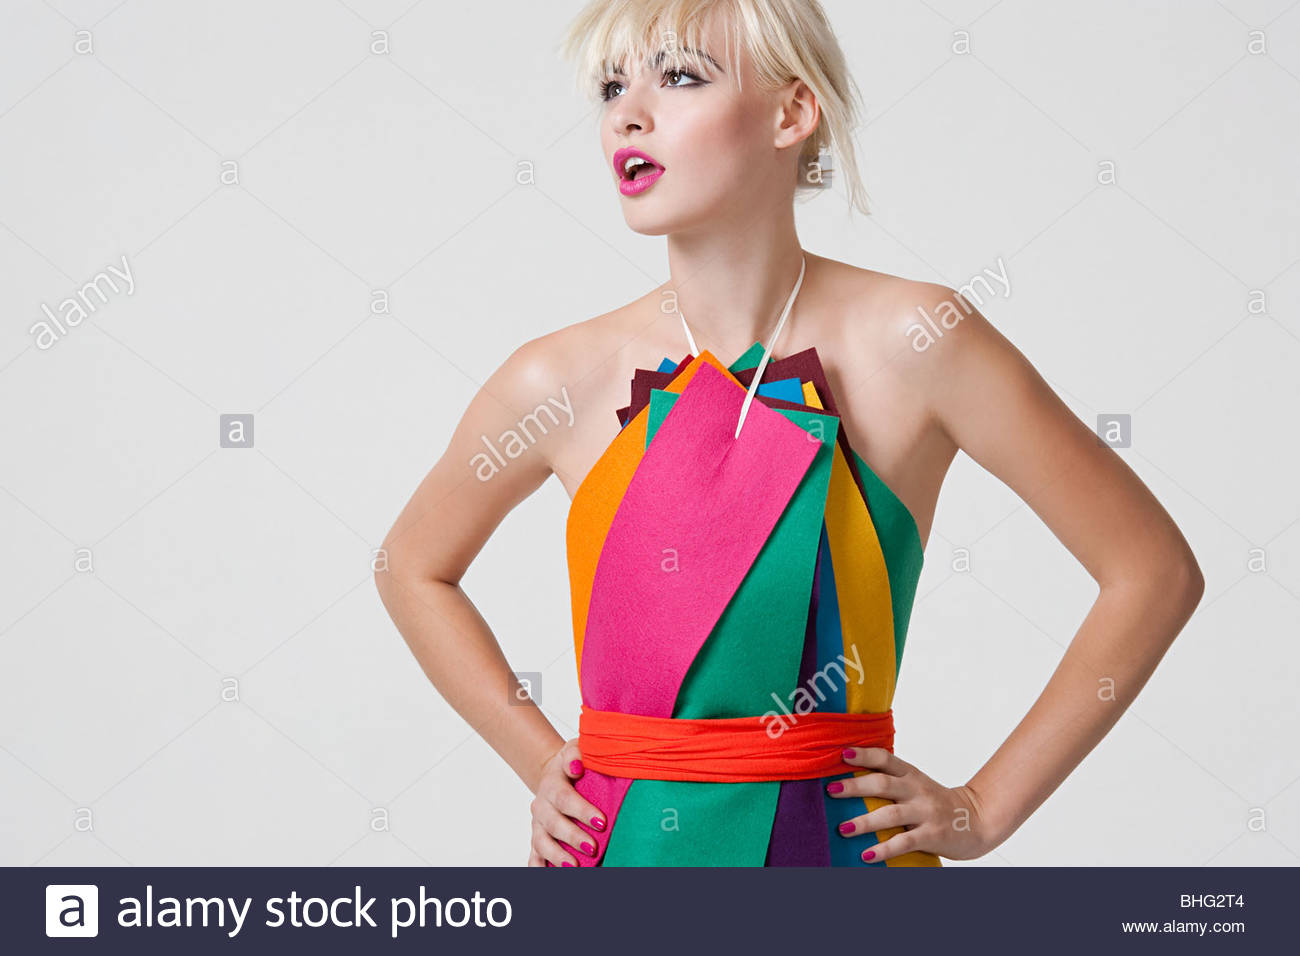 Young woman in dress made of coloured ribbons - Stock Image